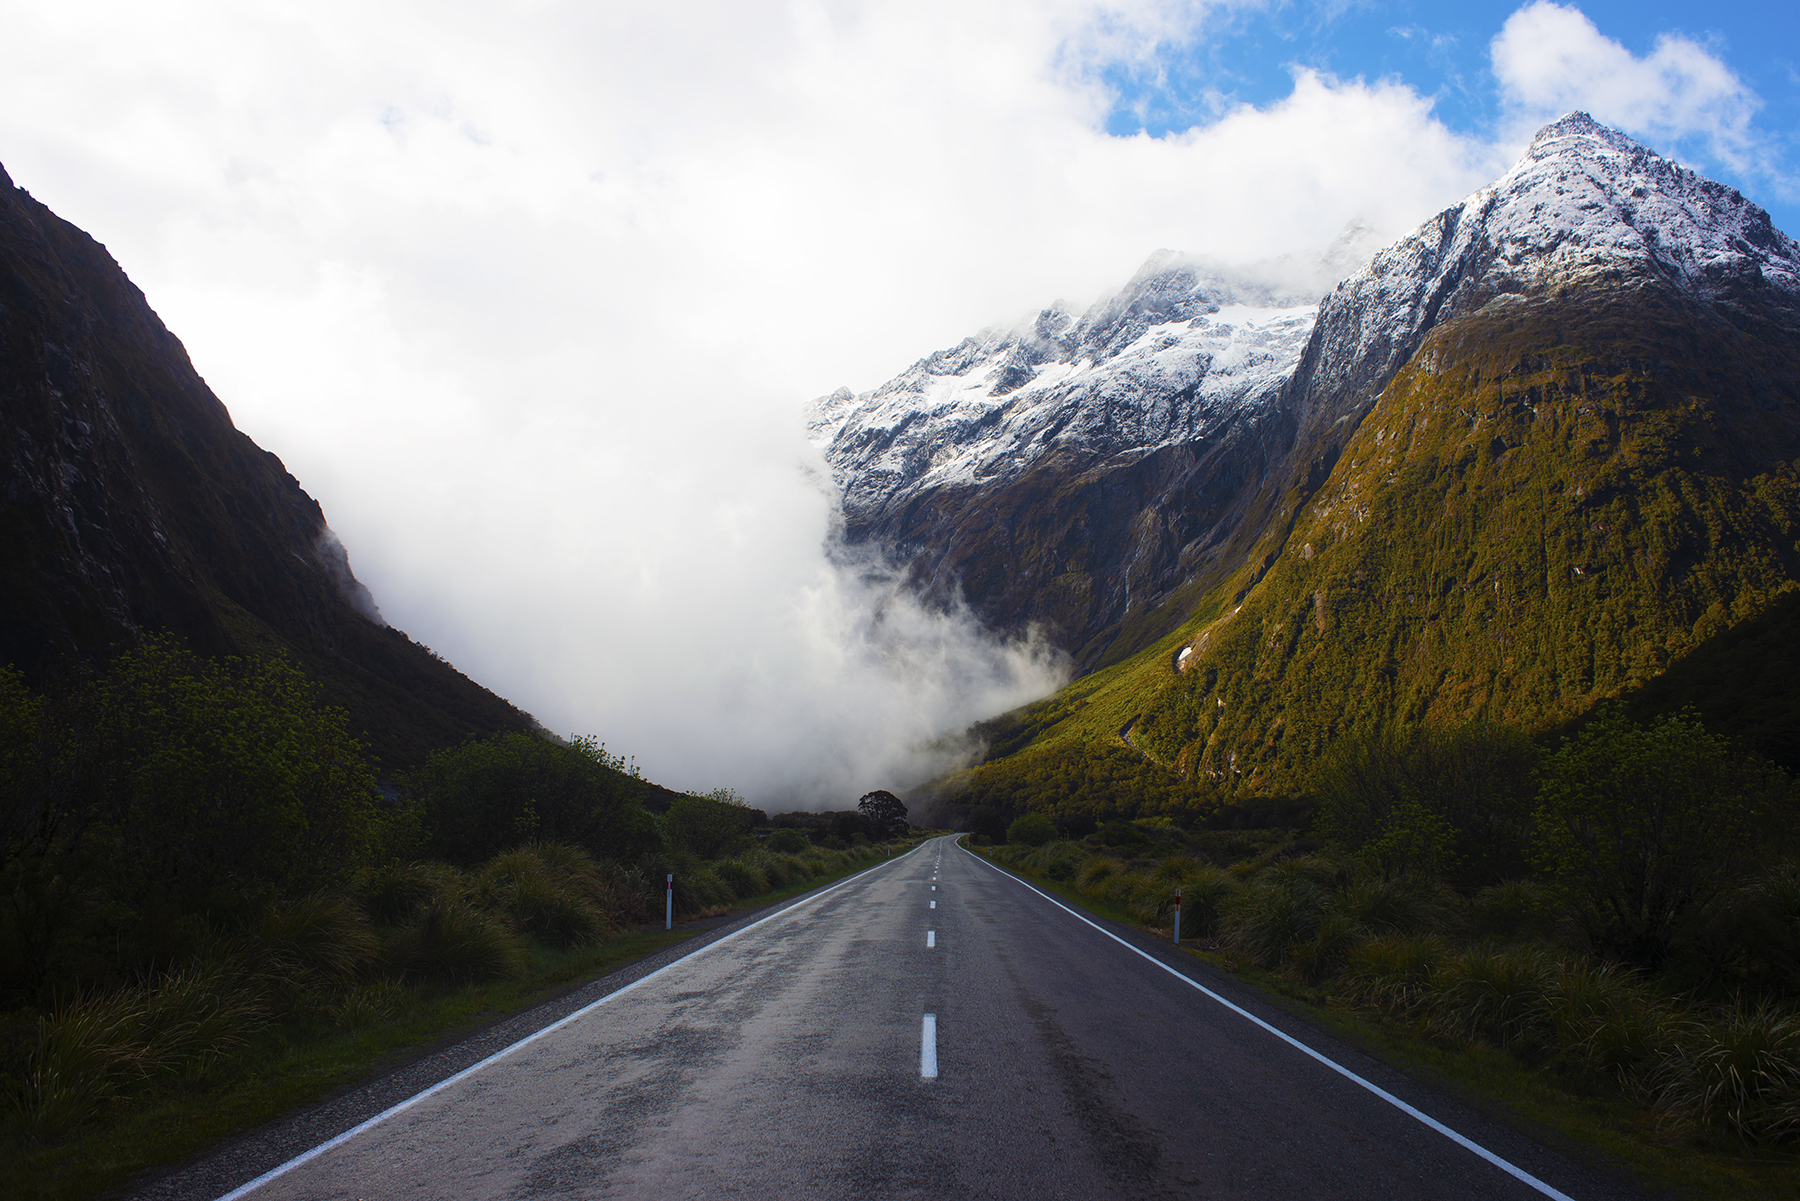 Milford Road, Fiordland, New Zealand. A Limited Edition Fine Art Landscape Photograph by Richard Hume